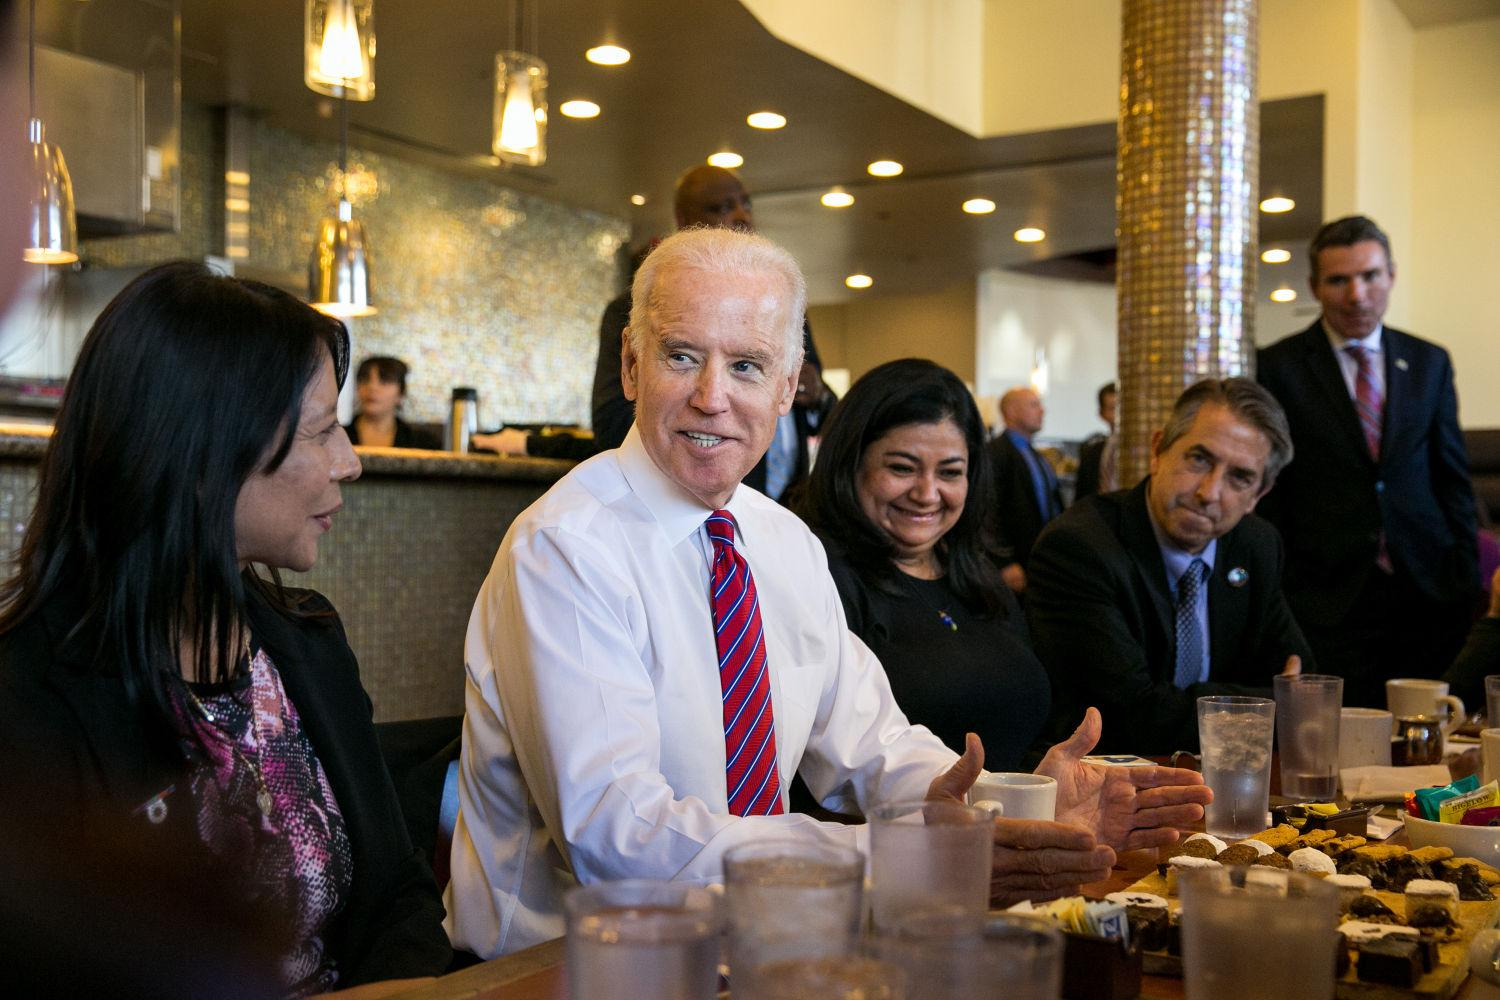 Vice President Joe Biden meets with healthcare officials to discuss the upcoming deadline for signing up for health coverage under the Affordable Care Act at the Homegirl Cafe in Los Angeles on January 23.